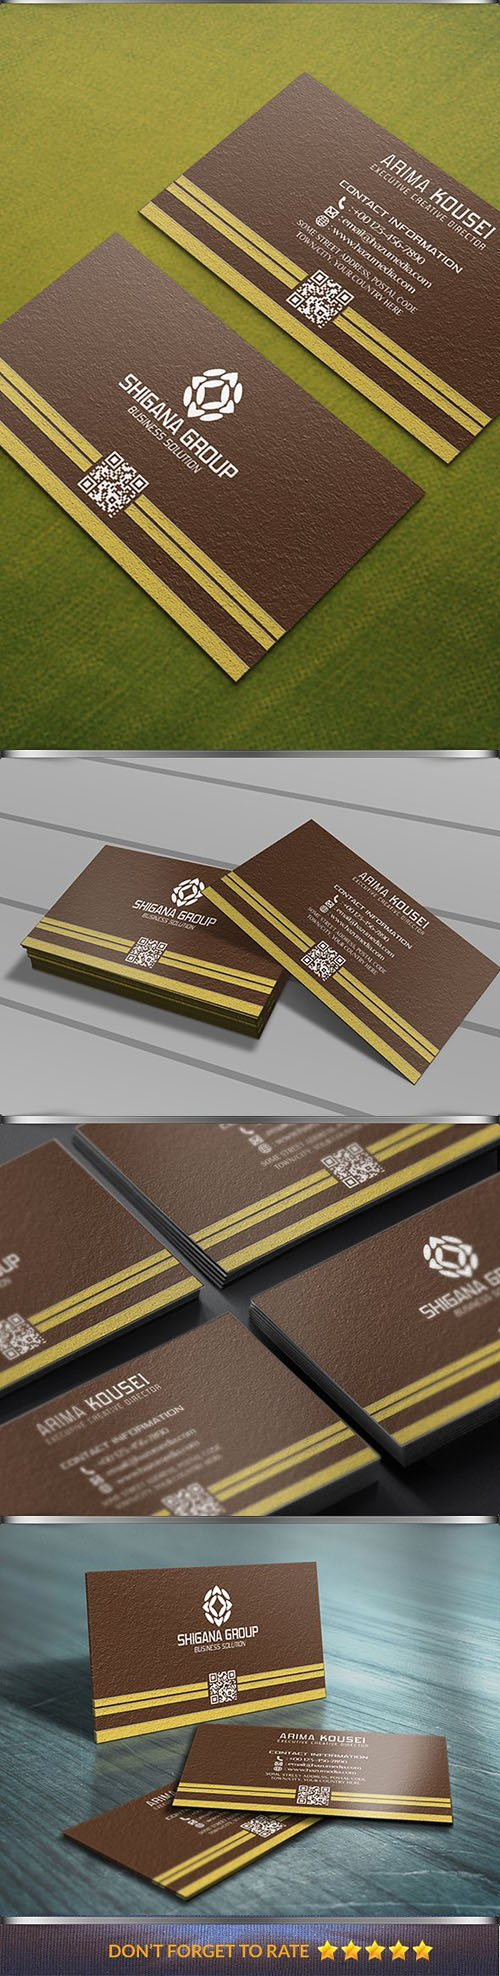 Corporate Business Card Vol. 2 1477094